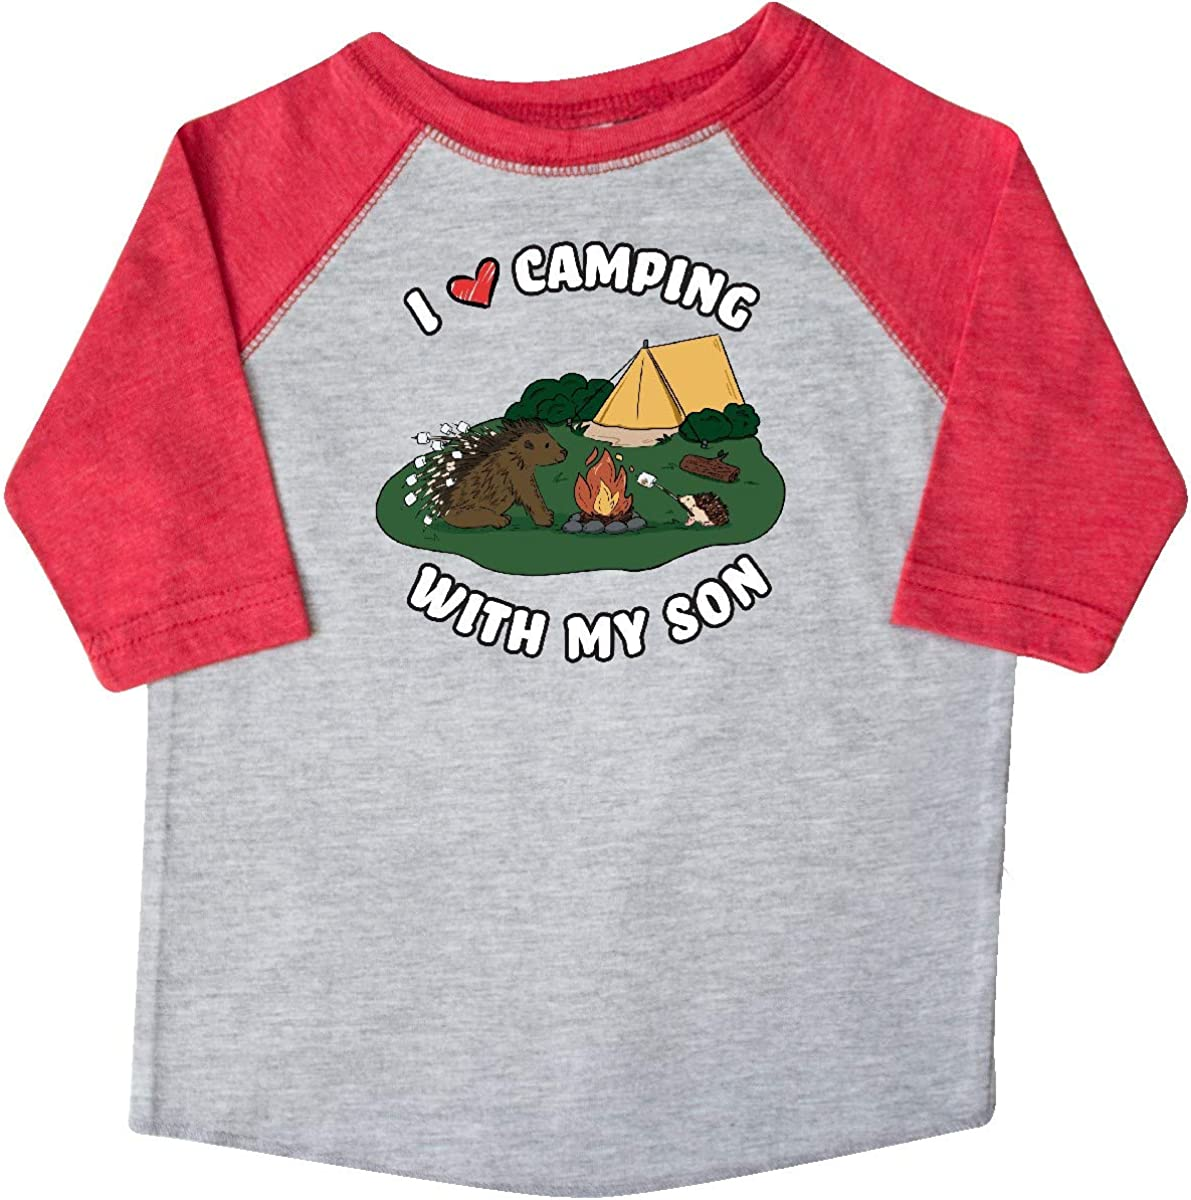 inktastic I Heart Camping with My Son with Hedgehog and Toddler T-Shirt